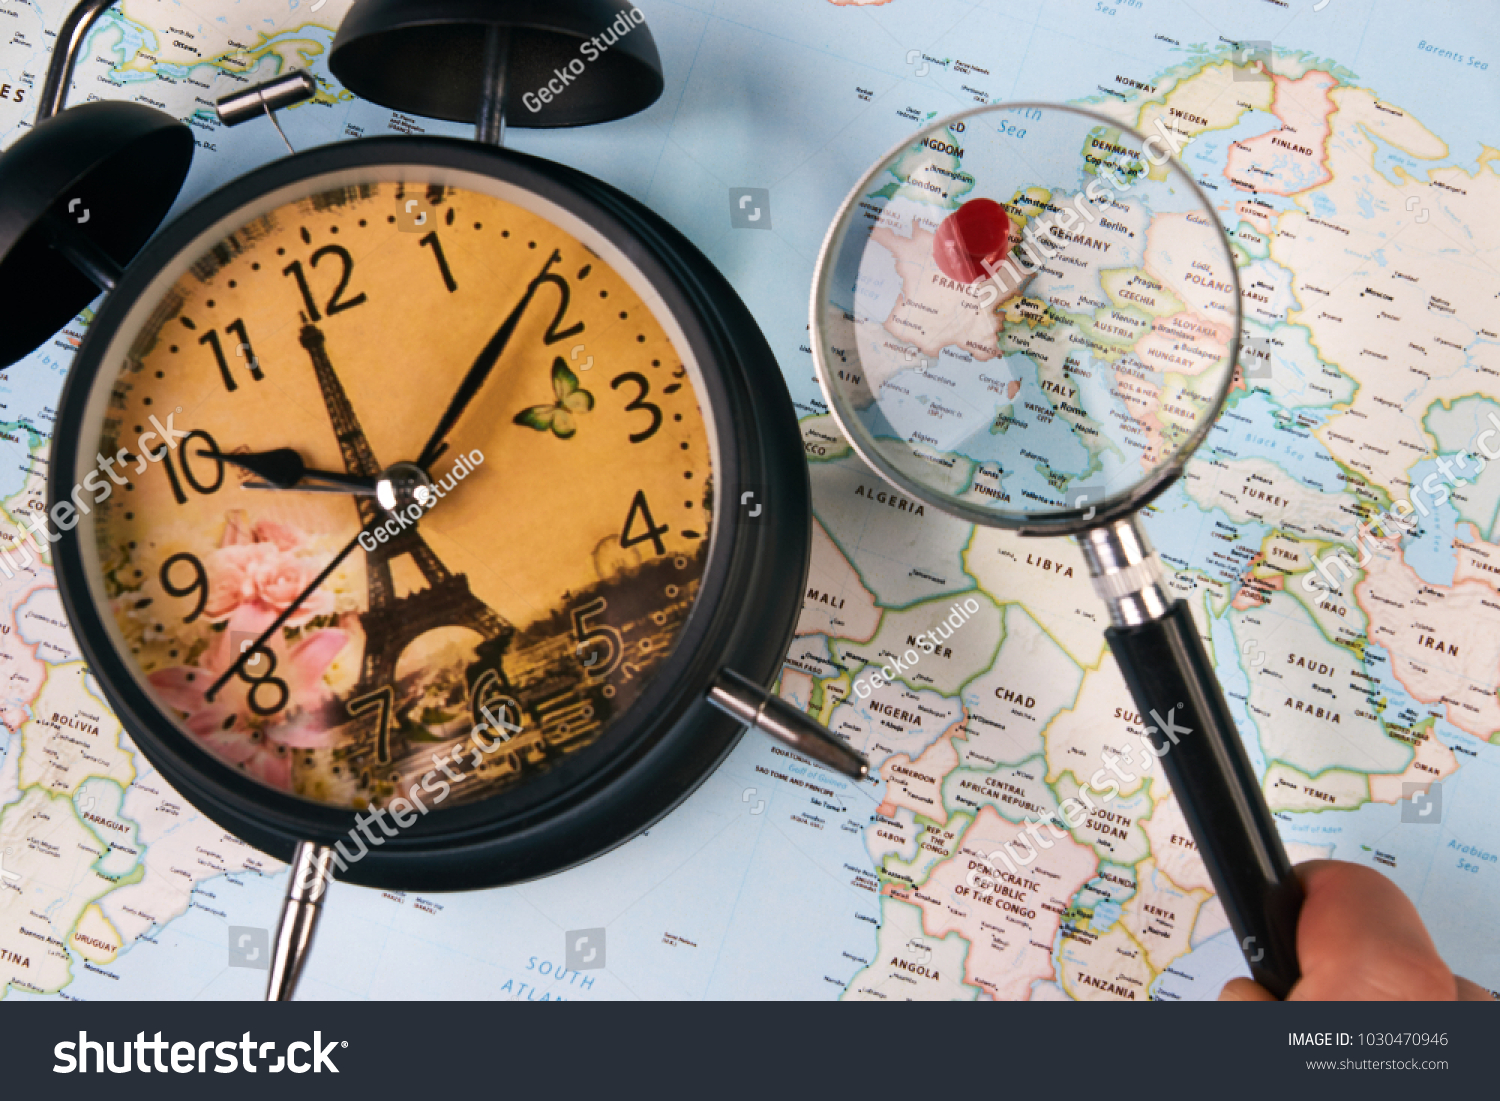 Planing travel france paris worldmap globe stock photo image planing for travel to france paris with worldmap globe magnifying glass and alarm clock travel gumiabroncs Image collections